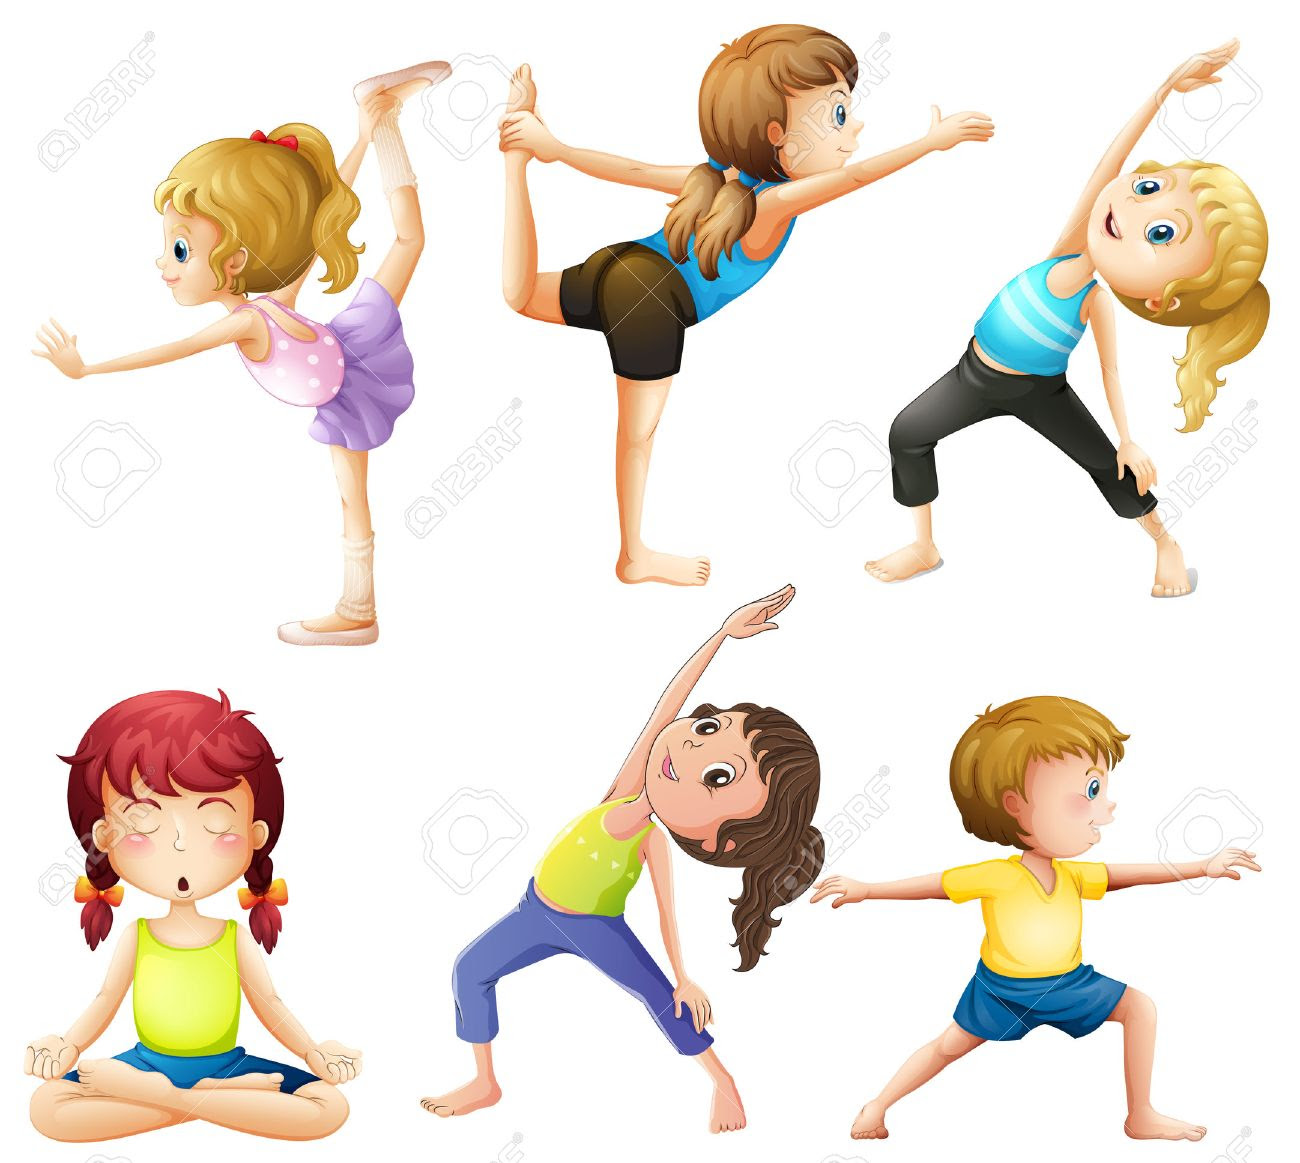 Image result for cartoon images of Yoga warm up